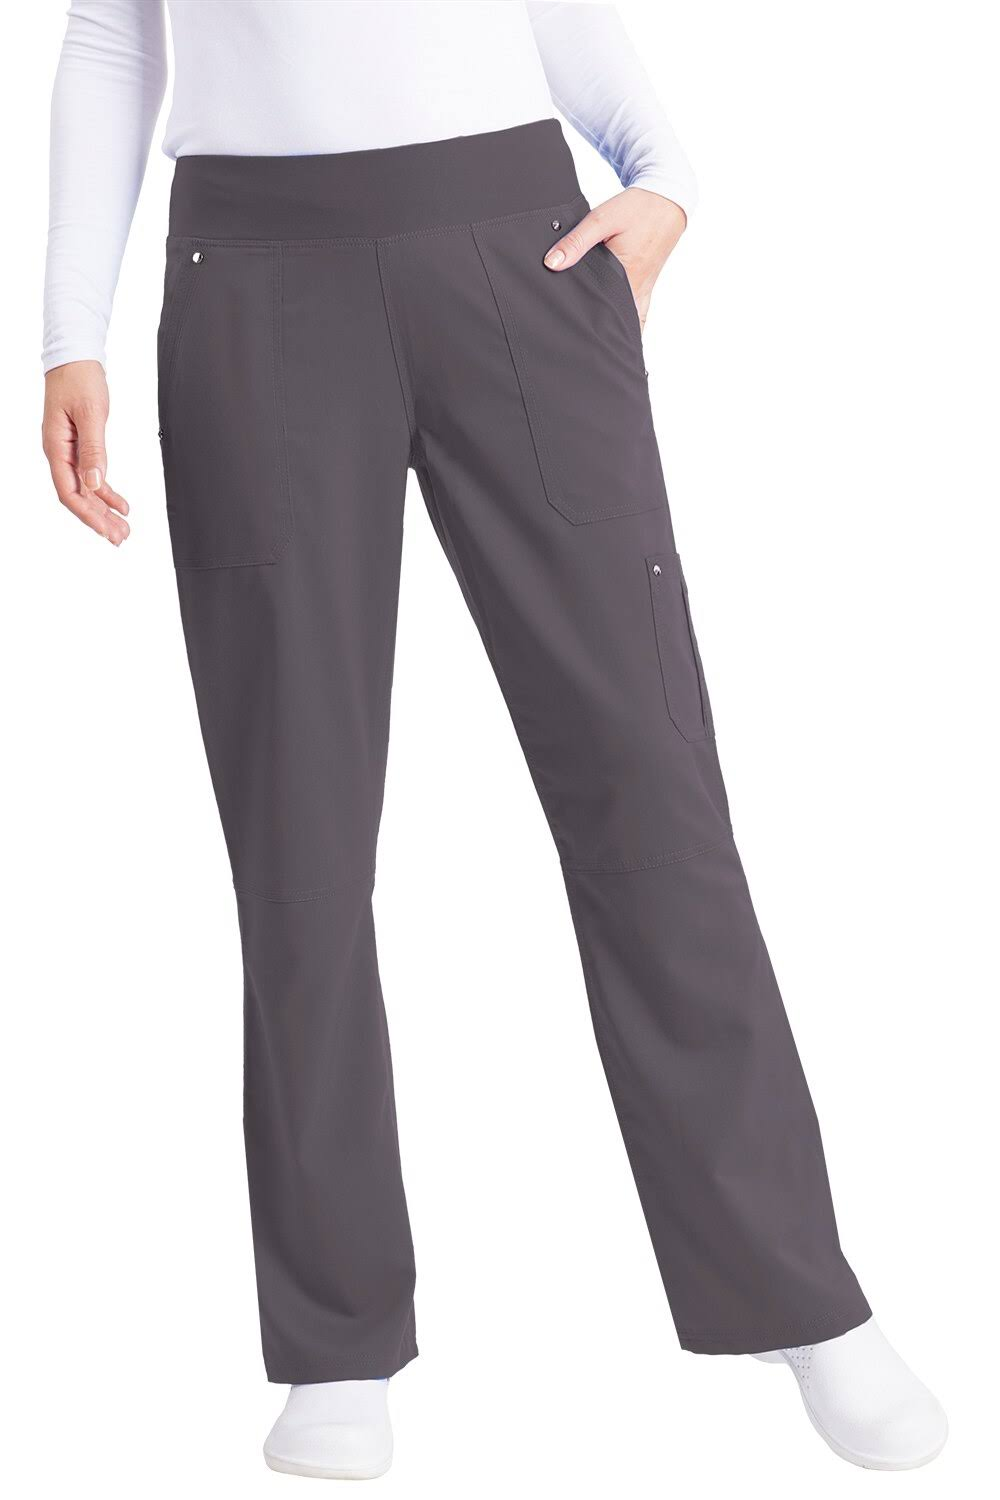 Healing Hands Tori Pant Scrub Bottoms - Pewter, Medium